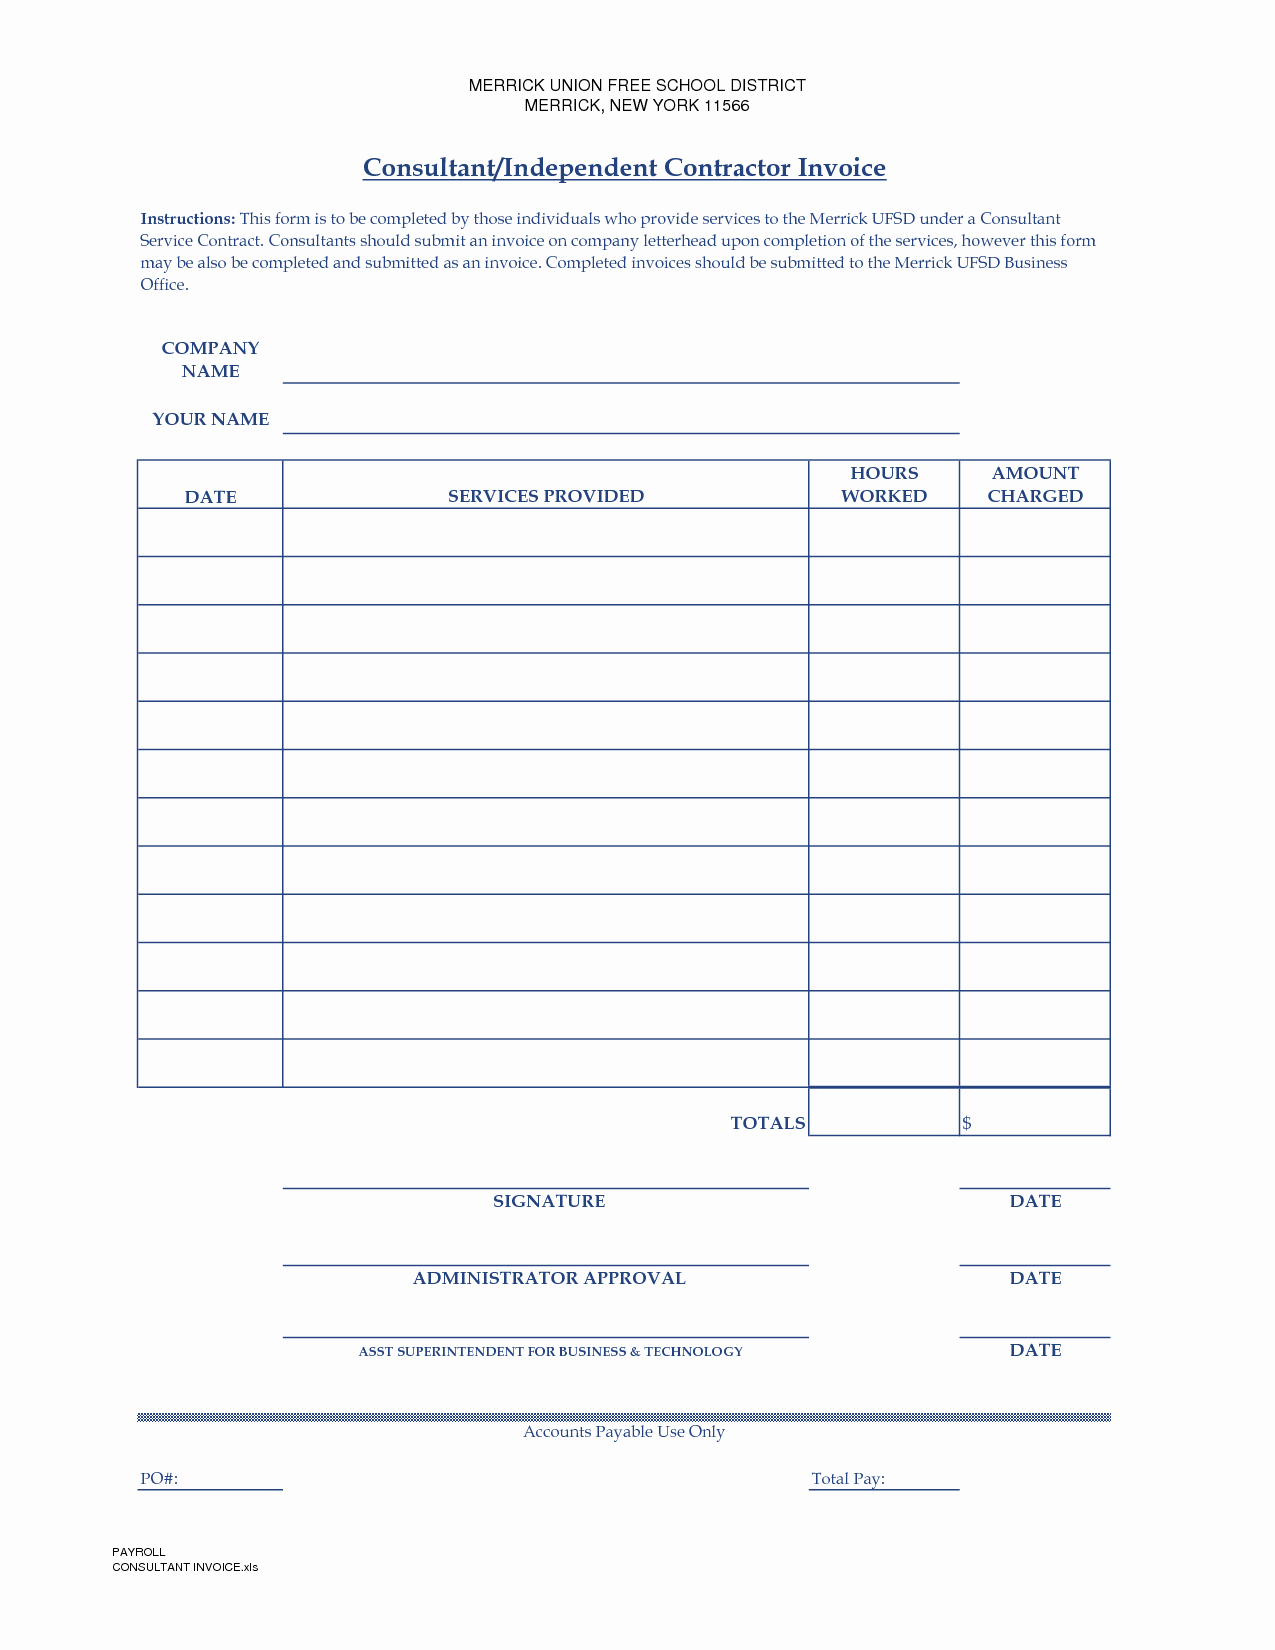 Independent Contractor Invoice Template Excel Elegant Independent Contractor Invoice Template